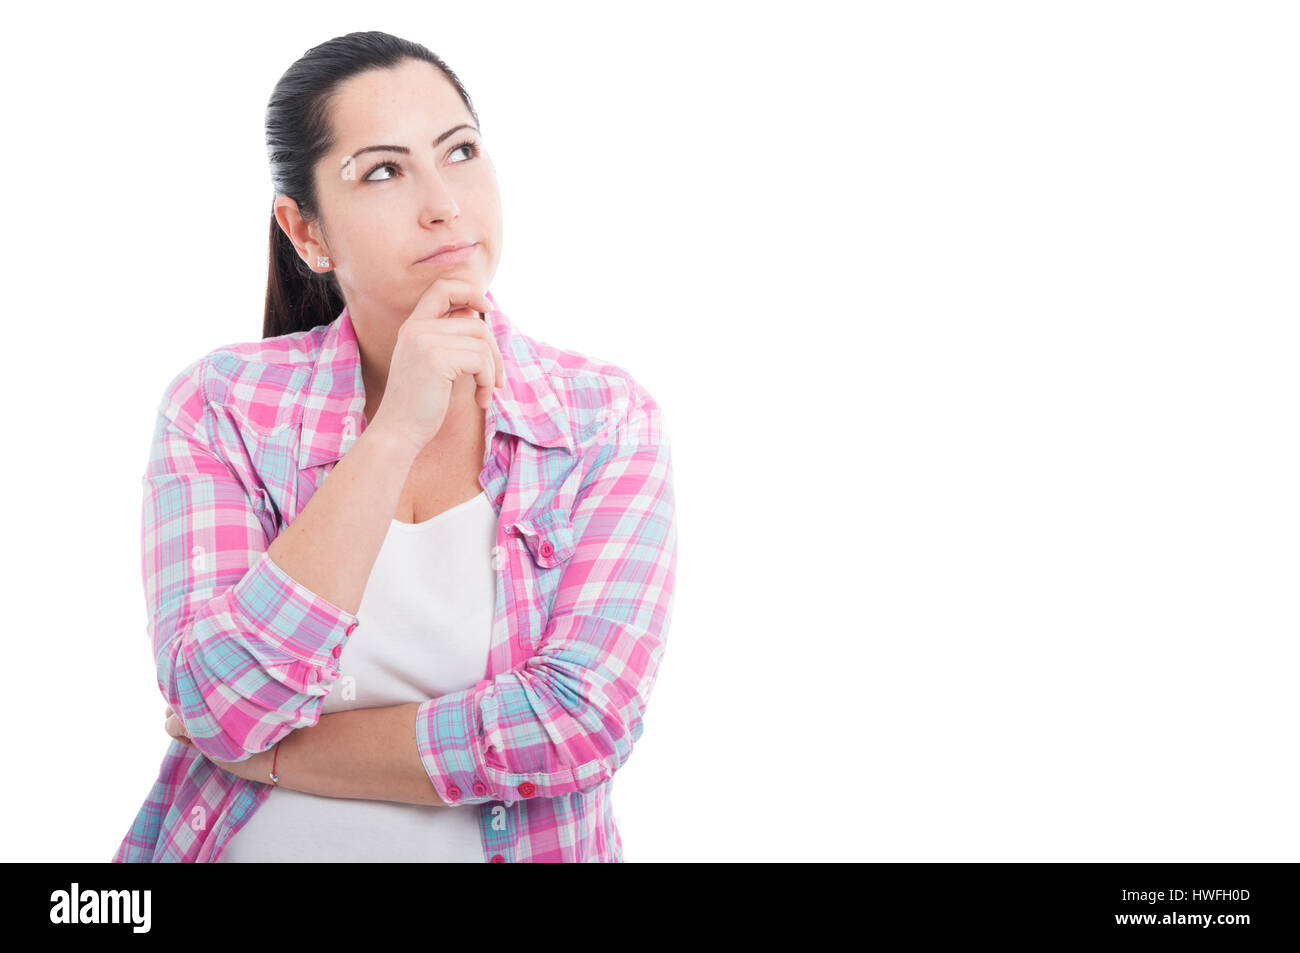 Pretty woman thinking at something with hand on chin on white background with copyspace - Stock Image